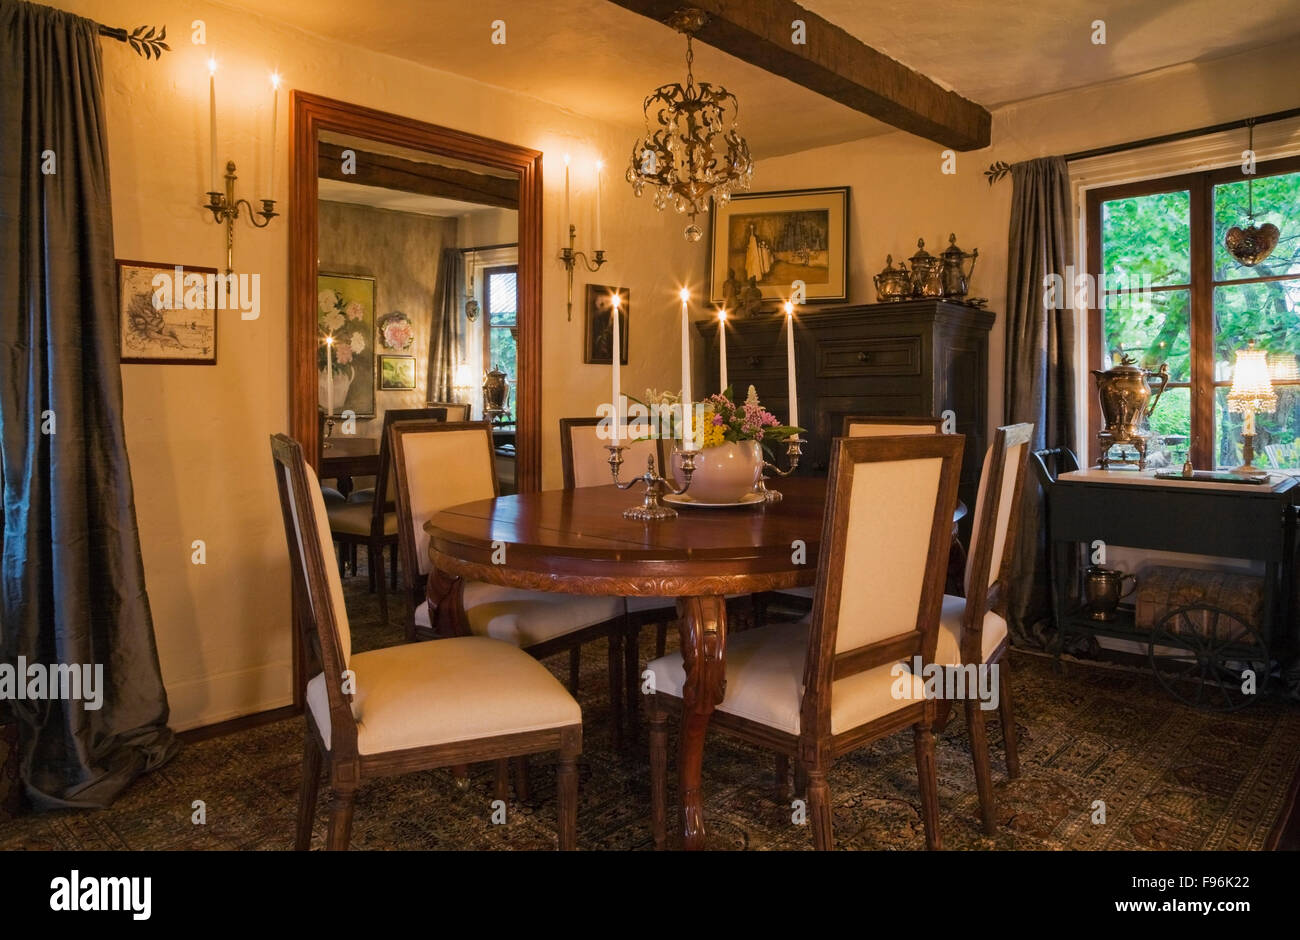 Oval dining room table and chairs